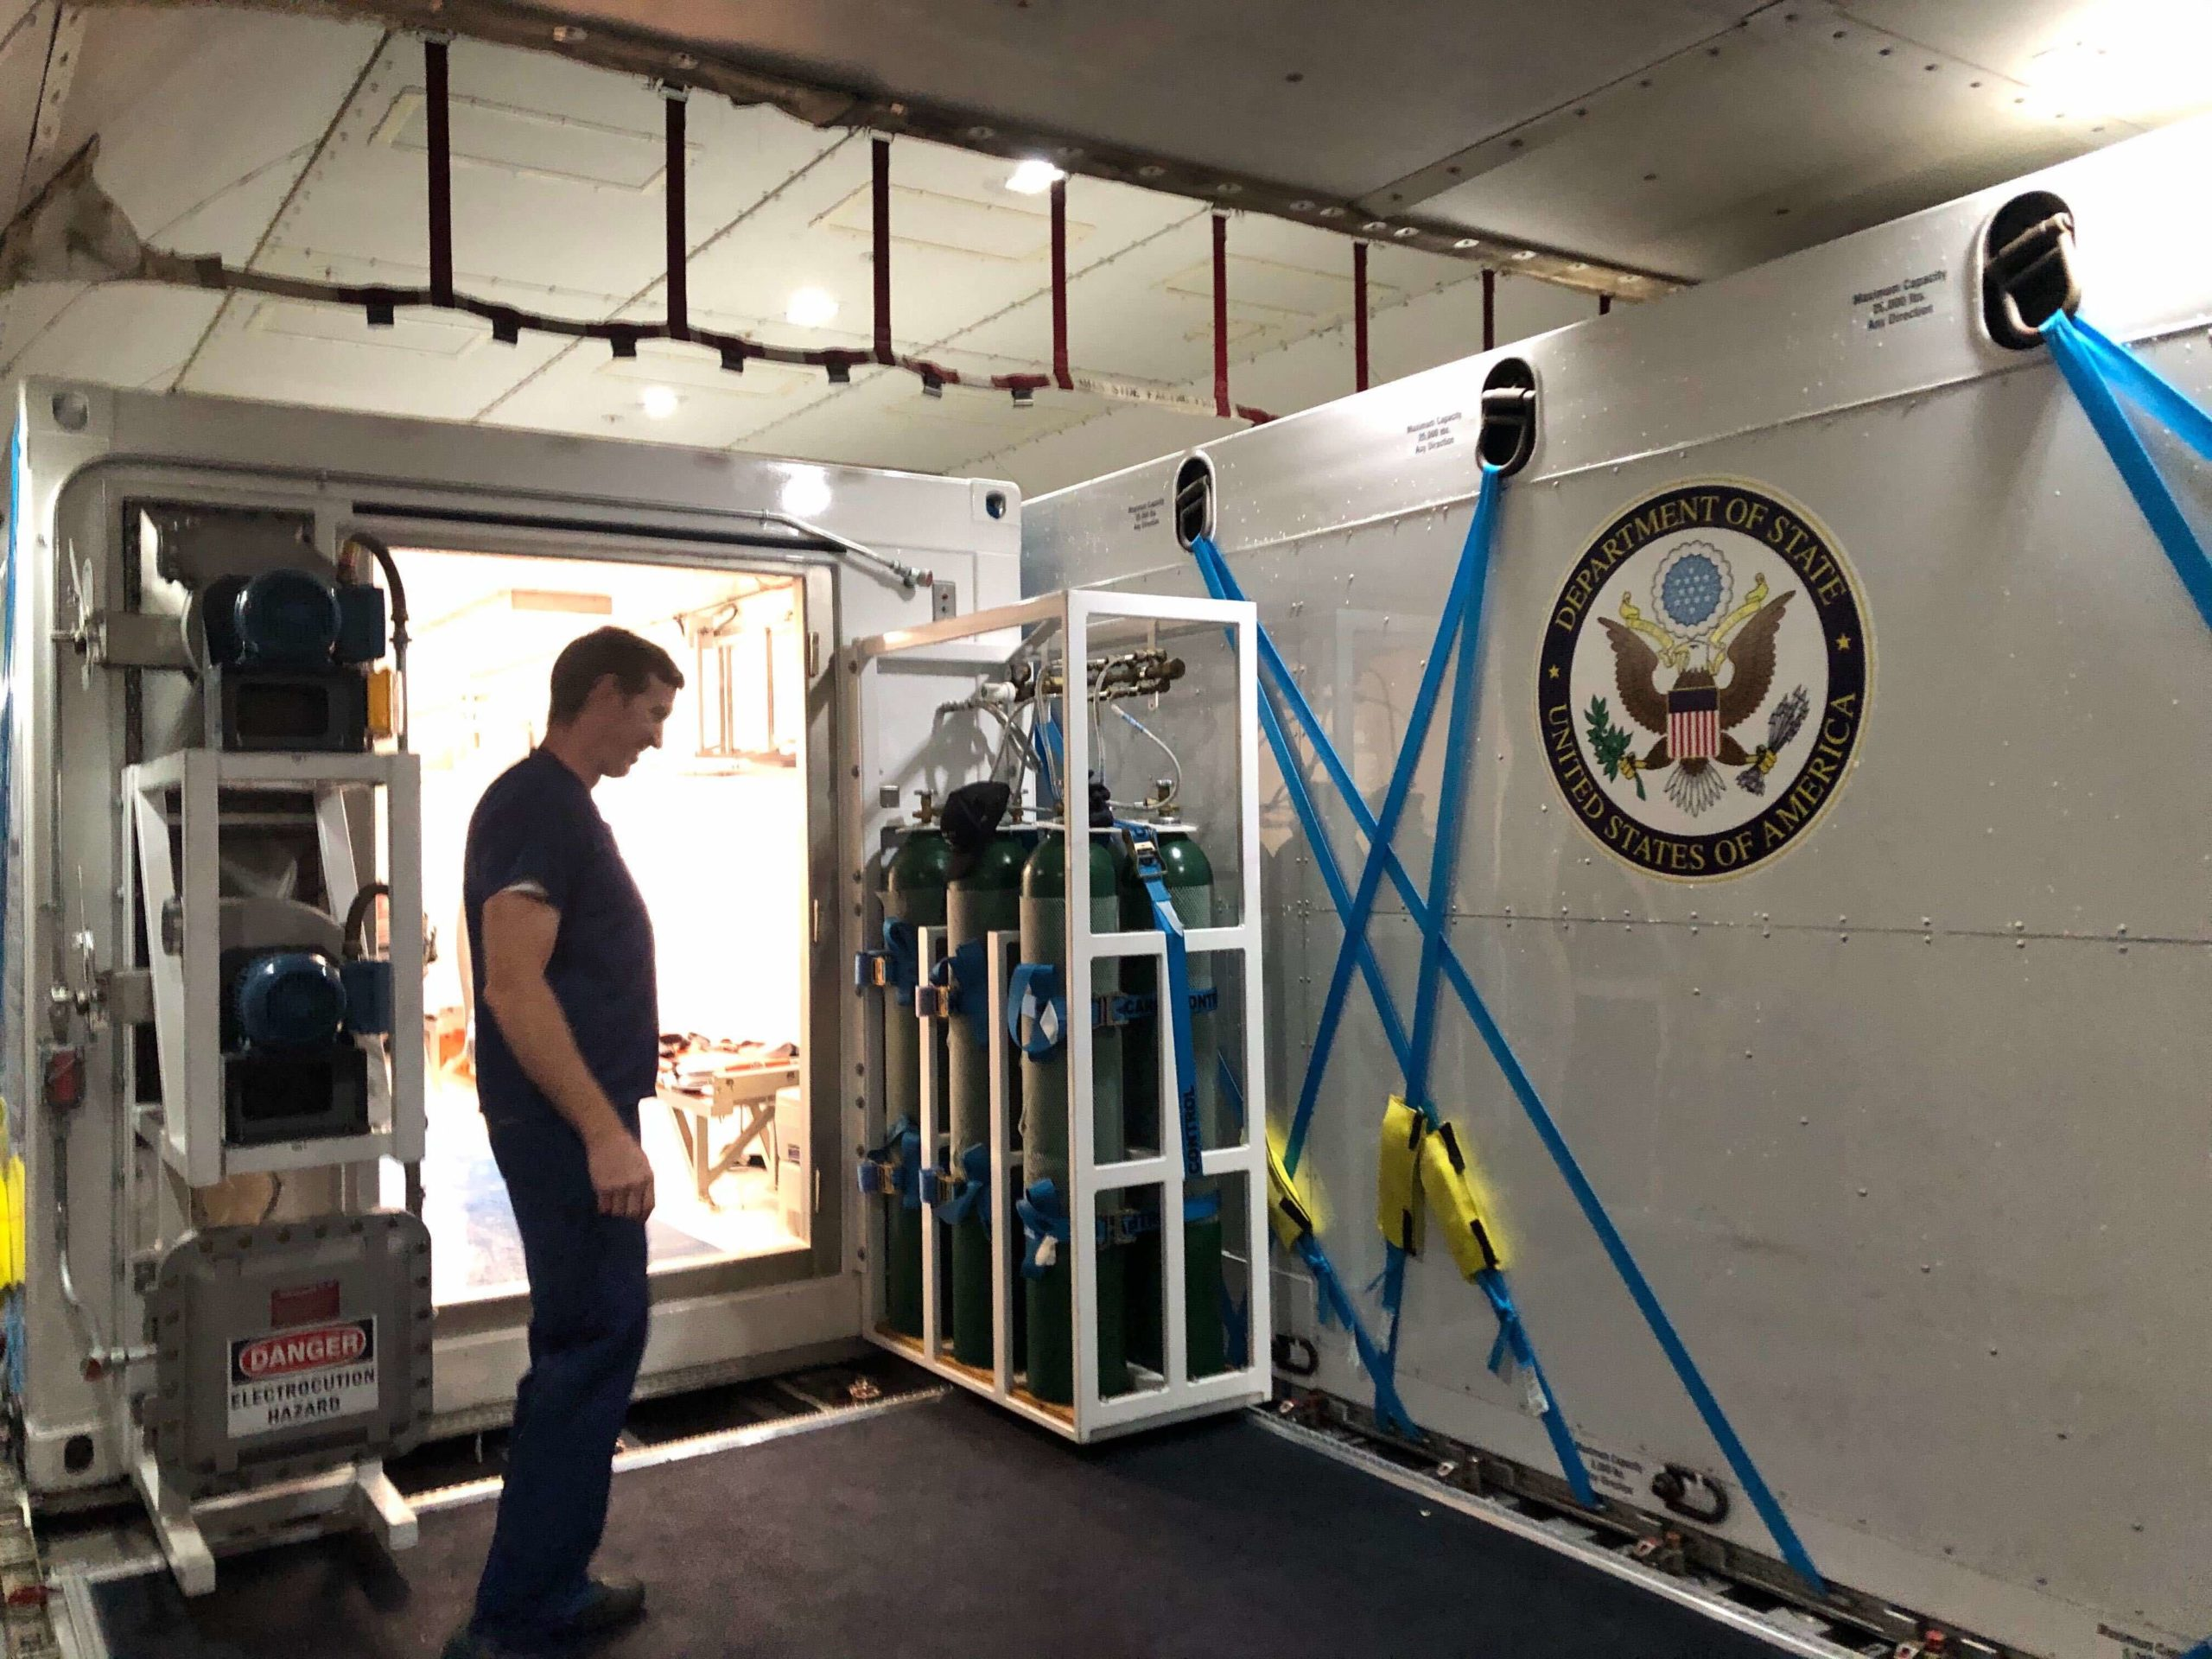 Operational Medicine utilizes Containerized Biohazard Containment Systems, or bio units, to bring contagious patients back to the United States. These high tech units are akin to a flying ambulance, fully equipped with supplies and monitoring devices to care for the patients.